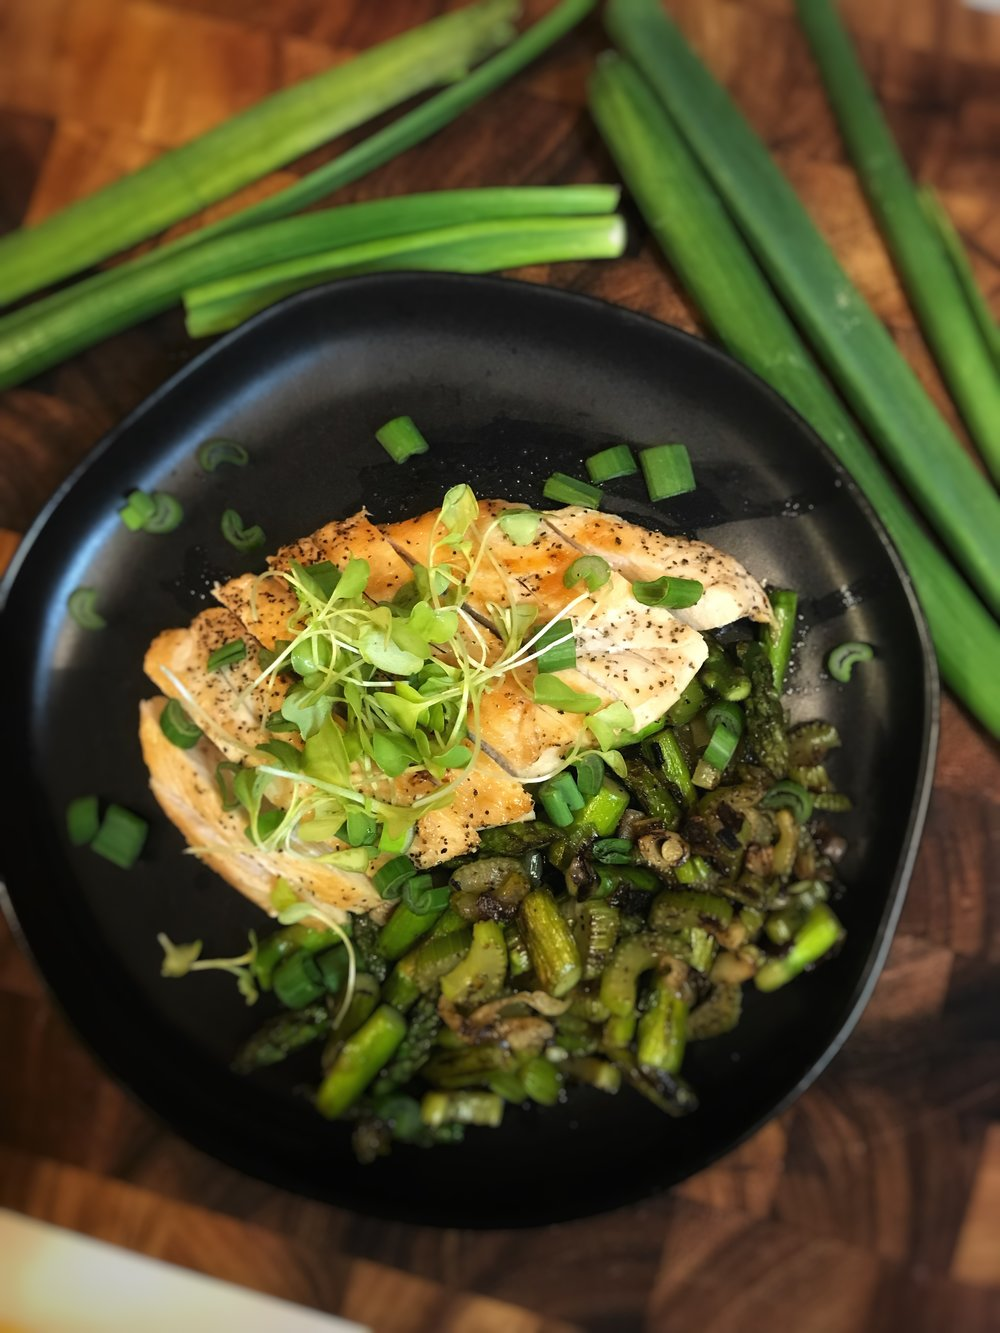 clean-eating-quick-dinner-ideas-food-blogger